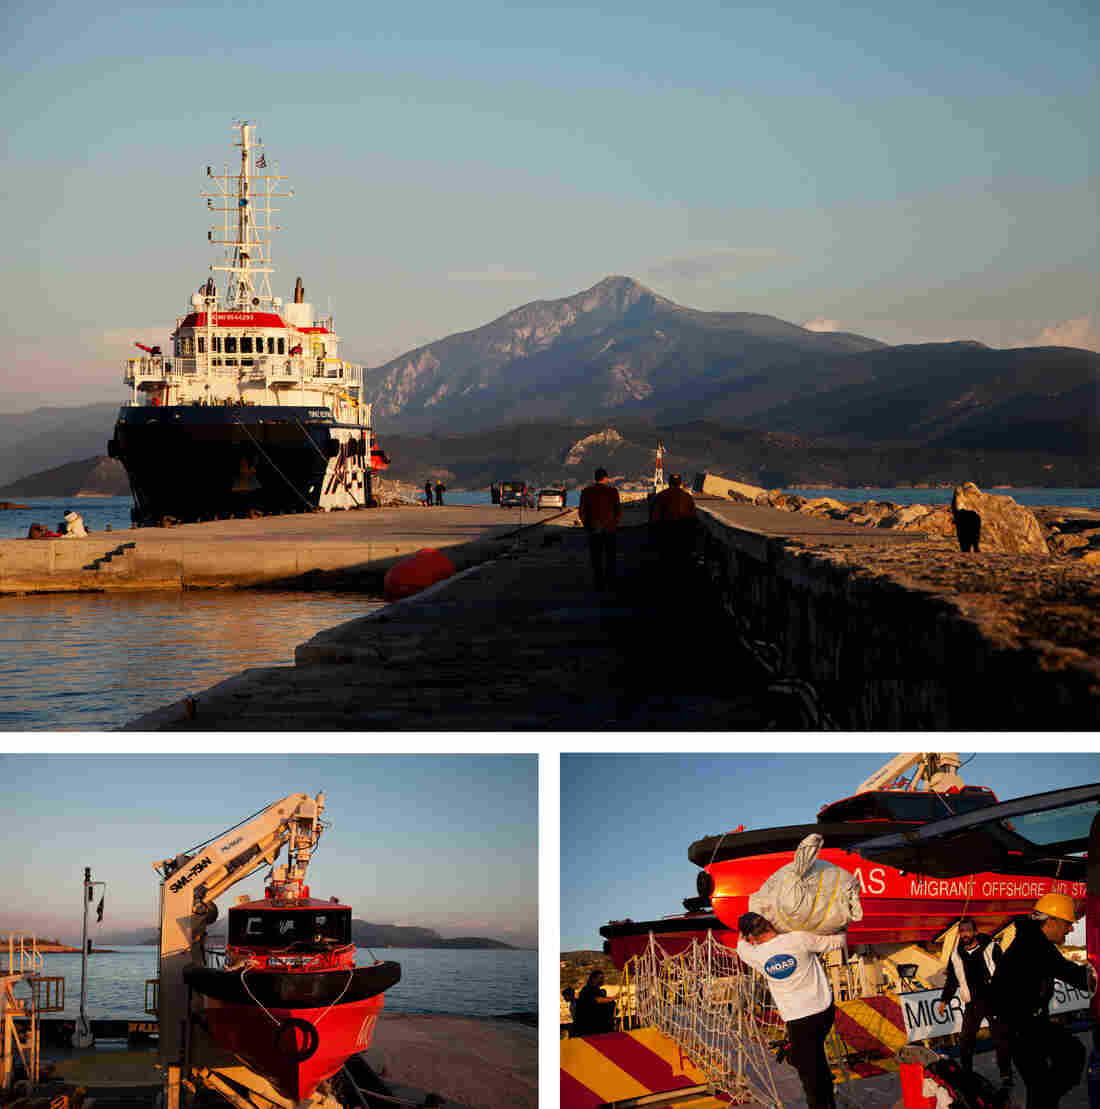 The Migrant Offshore Aid Station (MOAS), docked on the Greek island of Samos, carries out rescues in the Aegean Sea. Christopher Catrambone, an American businessman, and his Italian wife, Regina, started the Malta-based private rescue service in 2014.